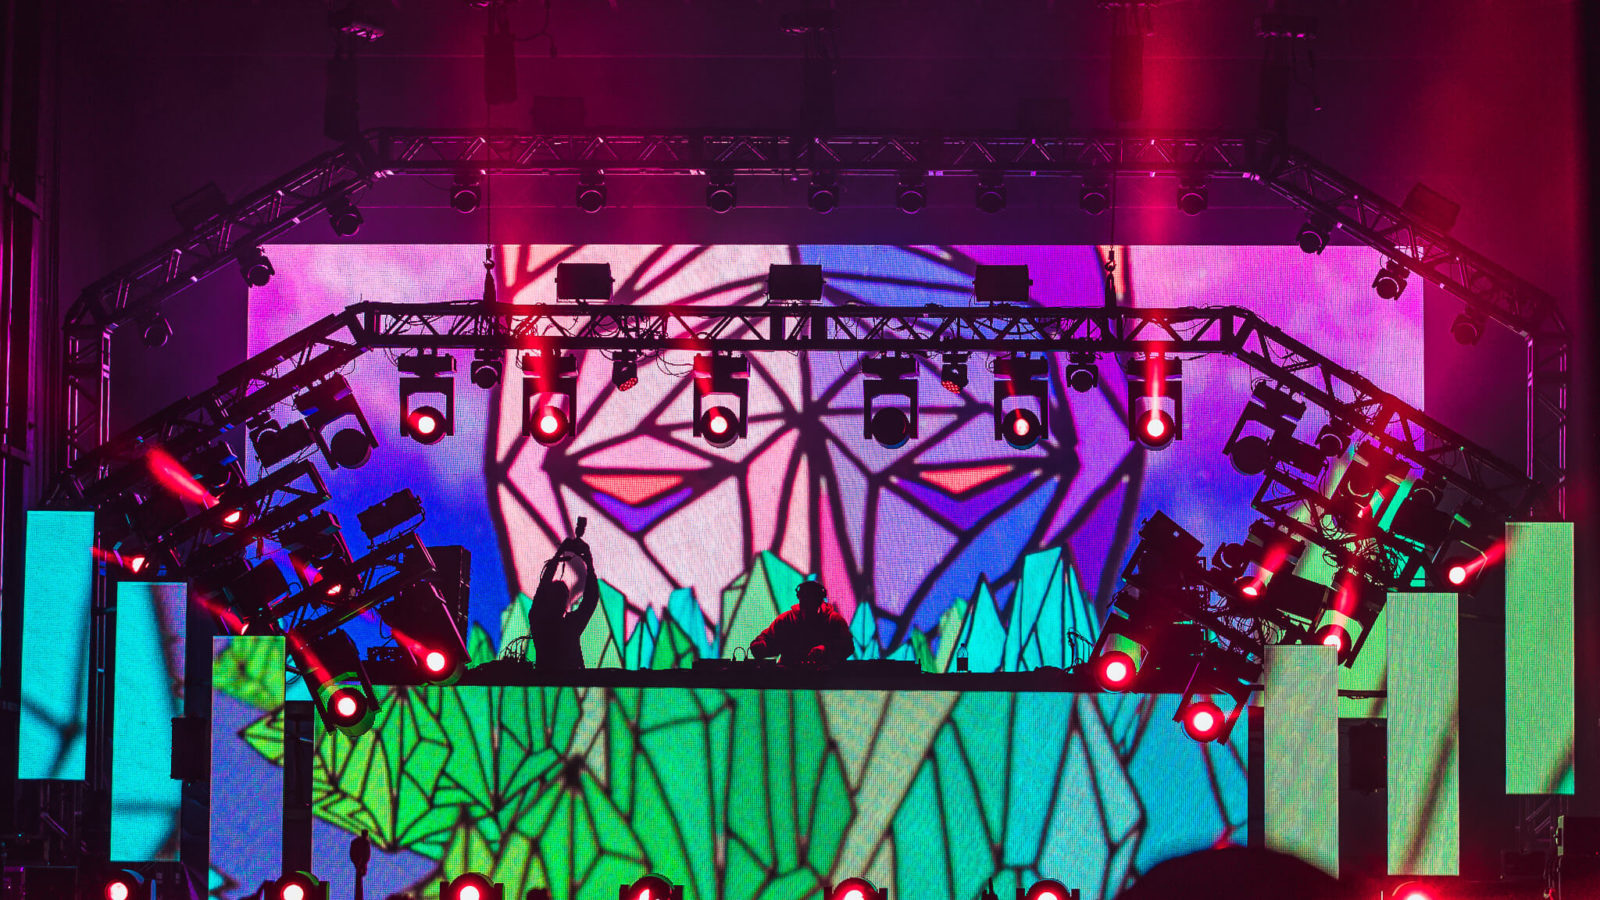 borgore and a colorful stage is nice